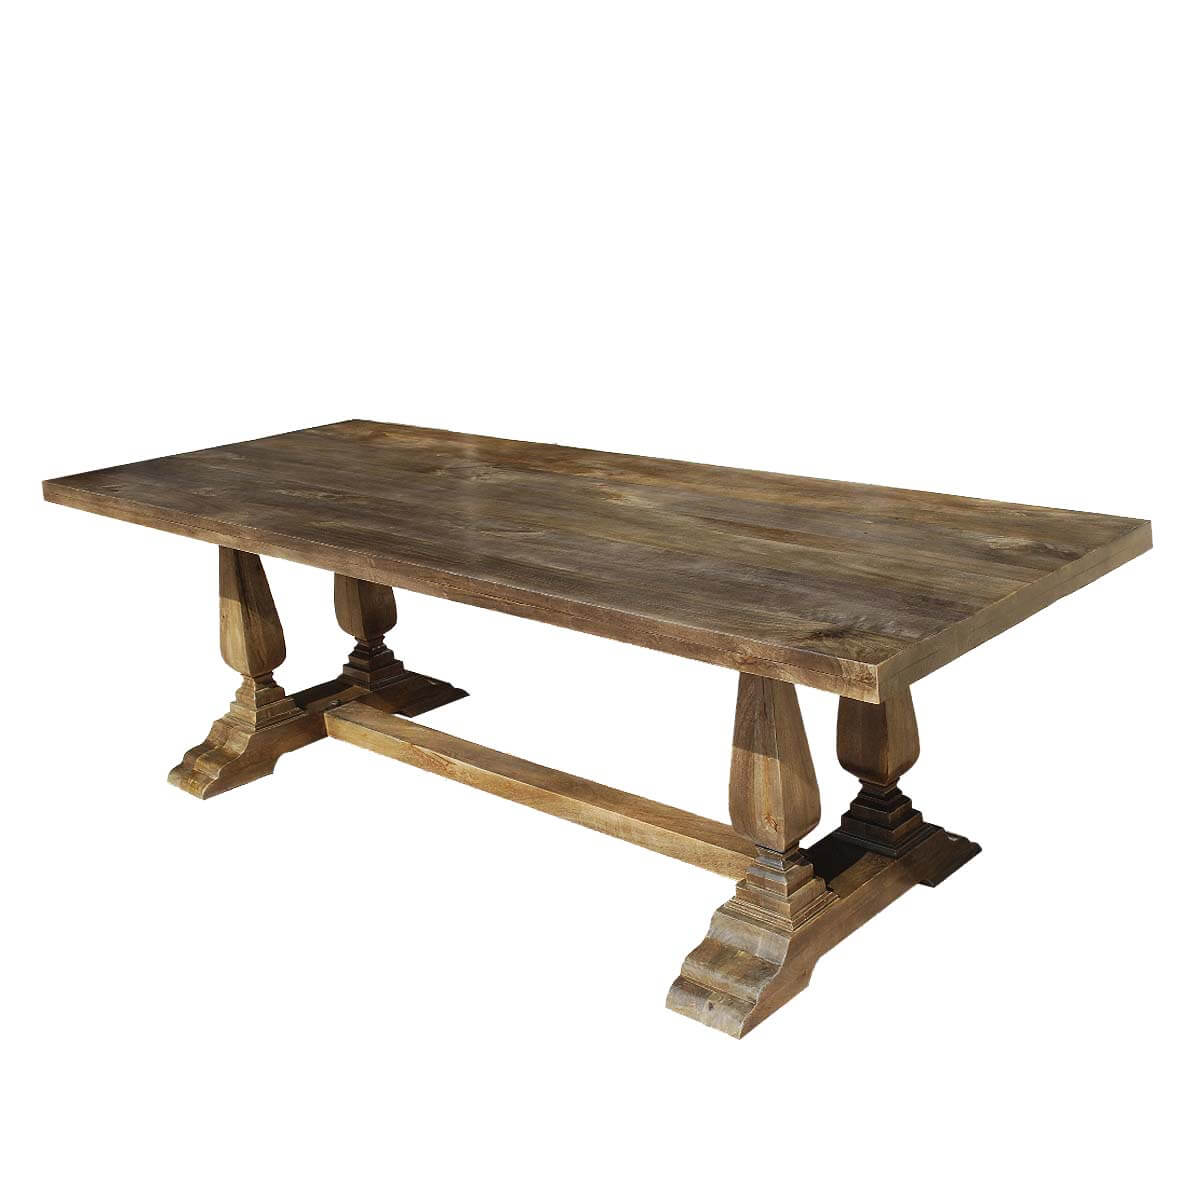 Pelham Rustic 98 Solid Wood Trestle Pedestal Dining Table